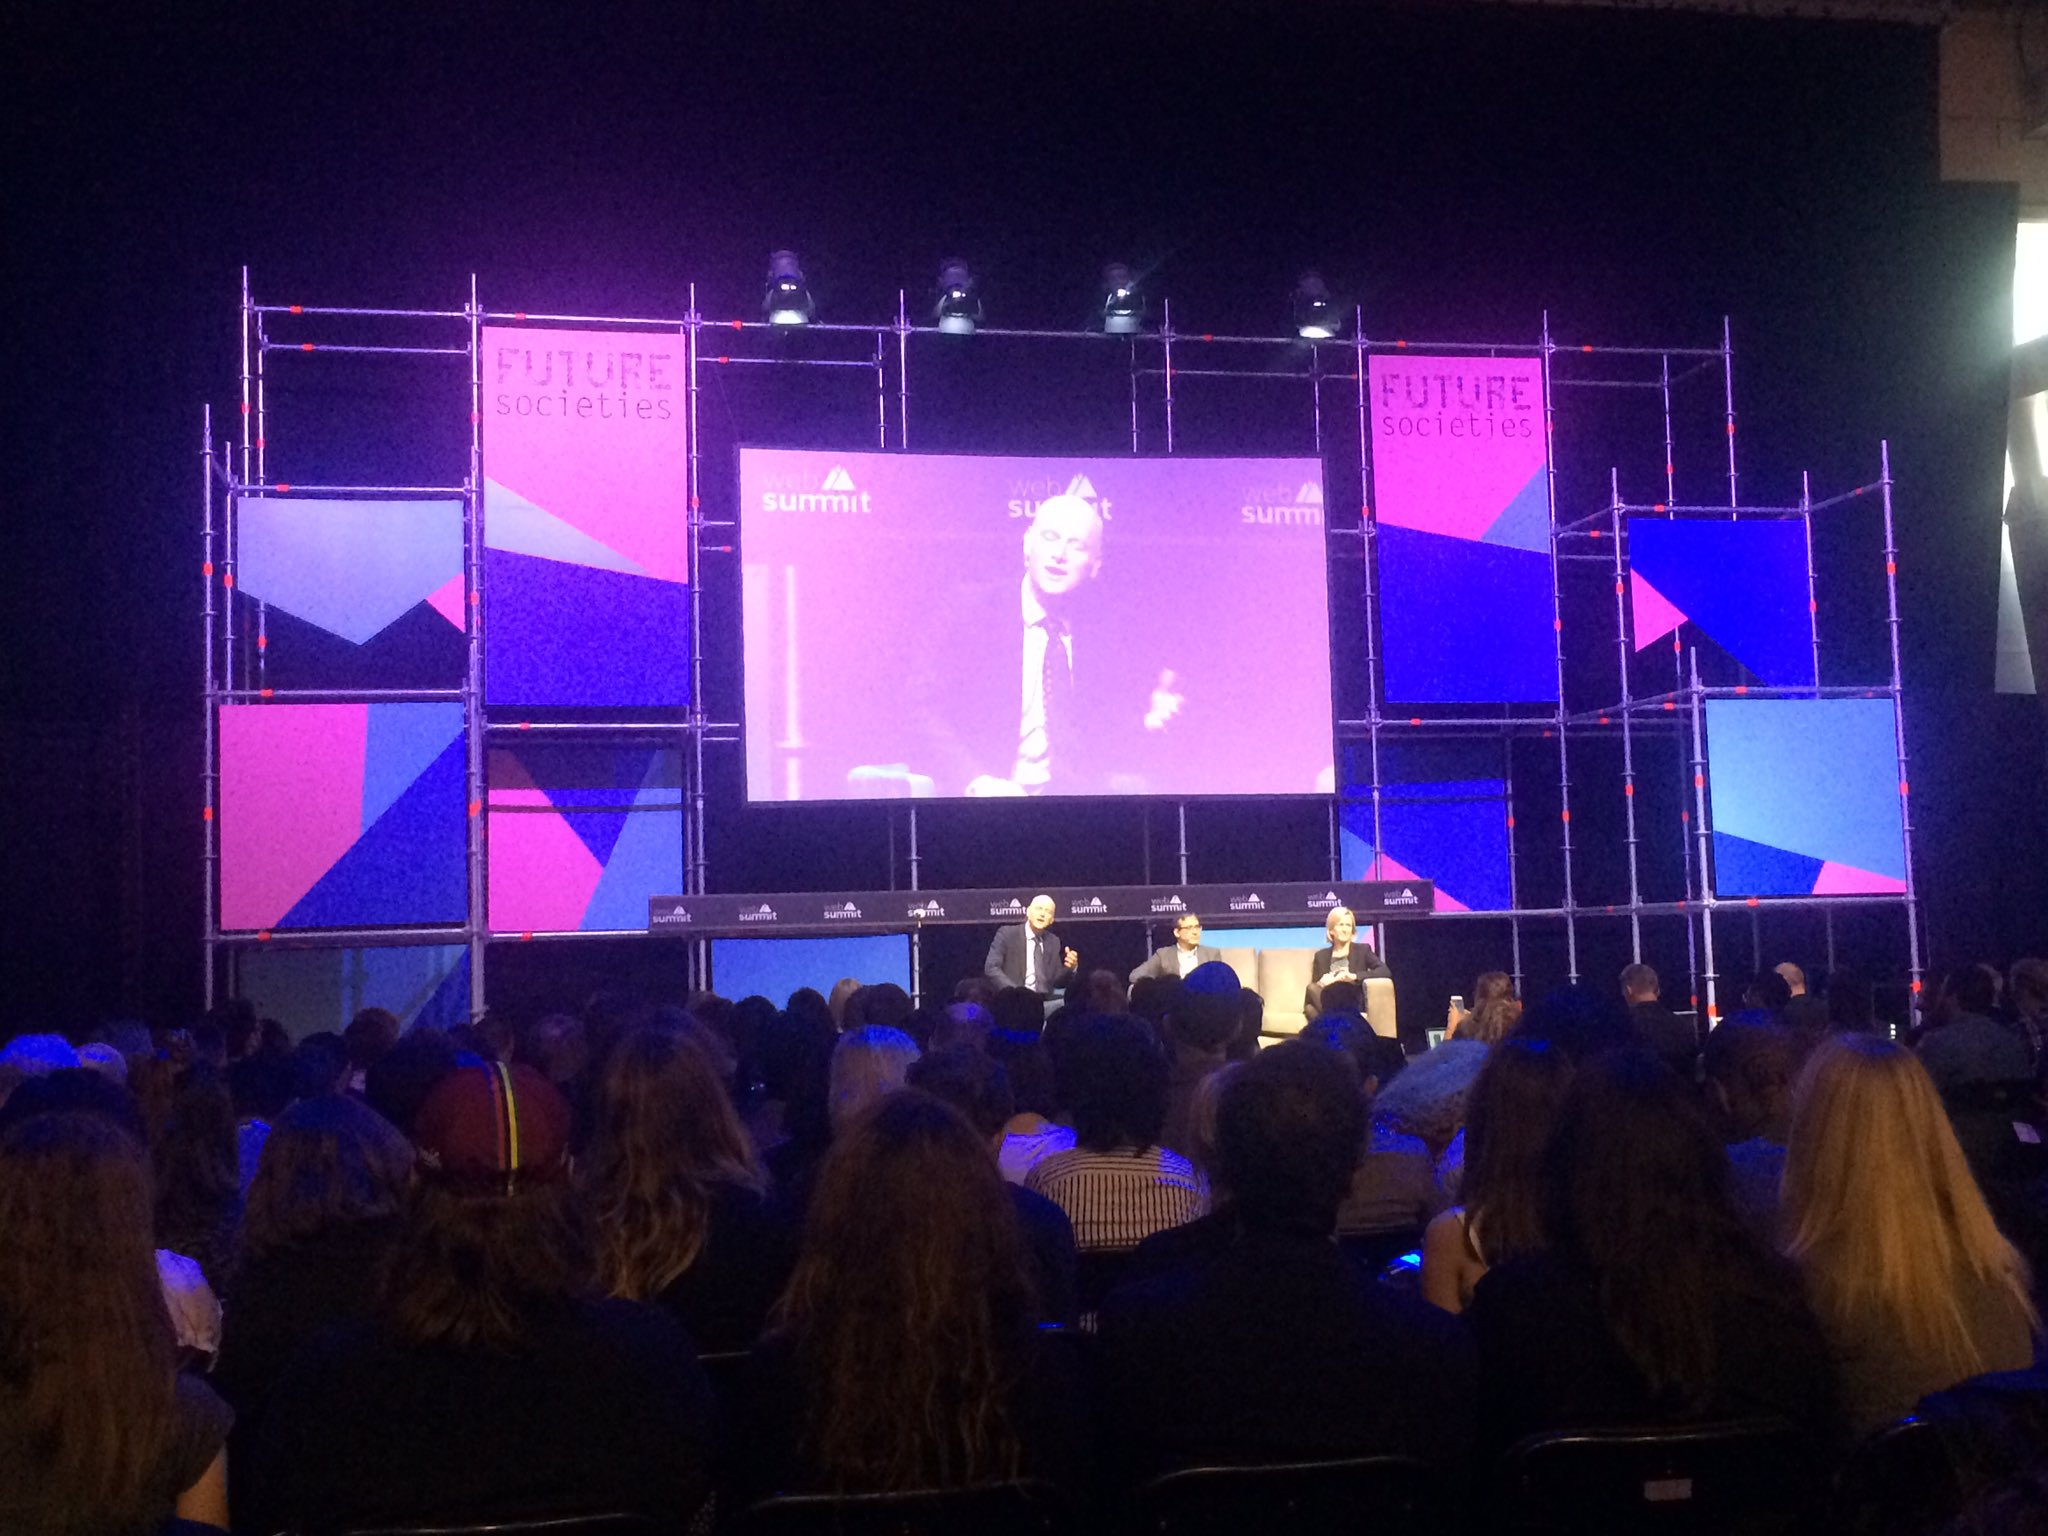 My first session from the #WebSummit The filter bubble vs democracy. All eyes on #FutureSocieties https://t.co/Eso16Wj3jN